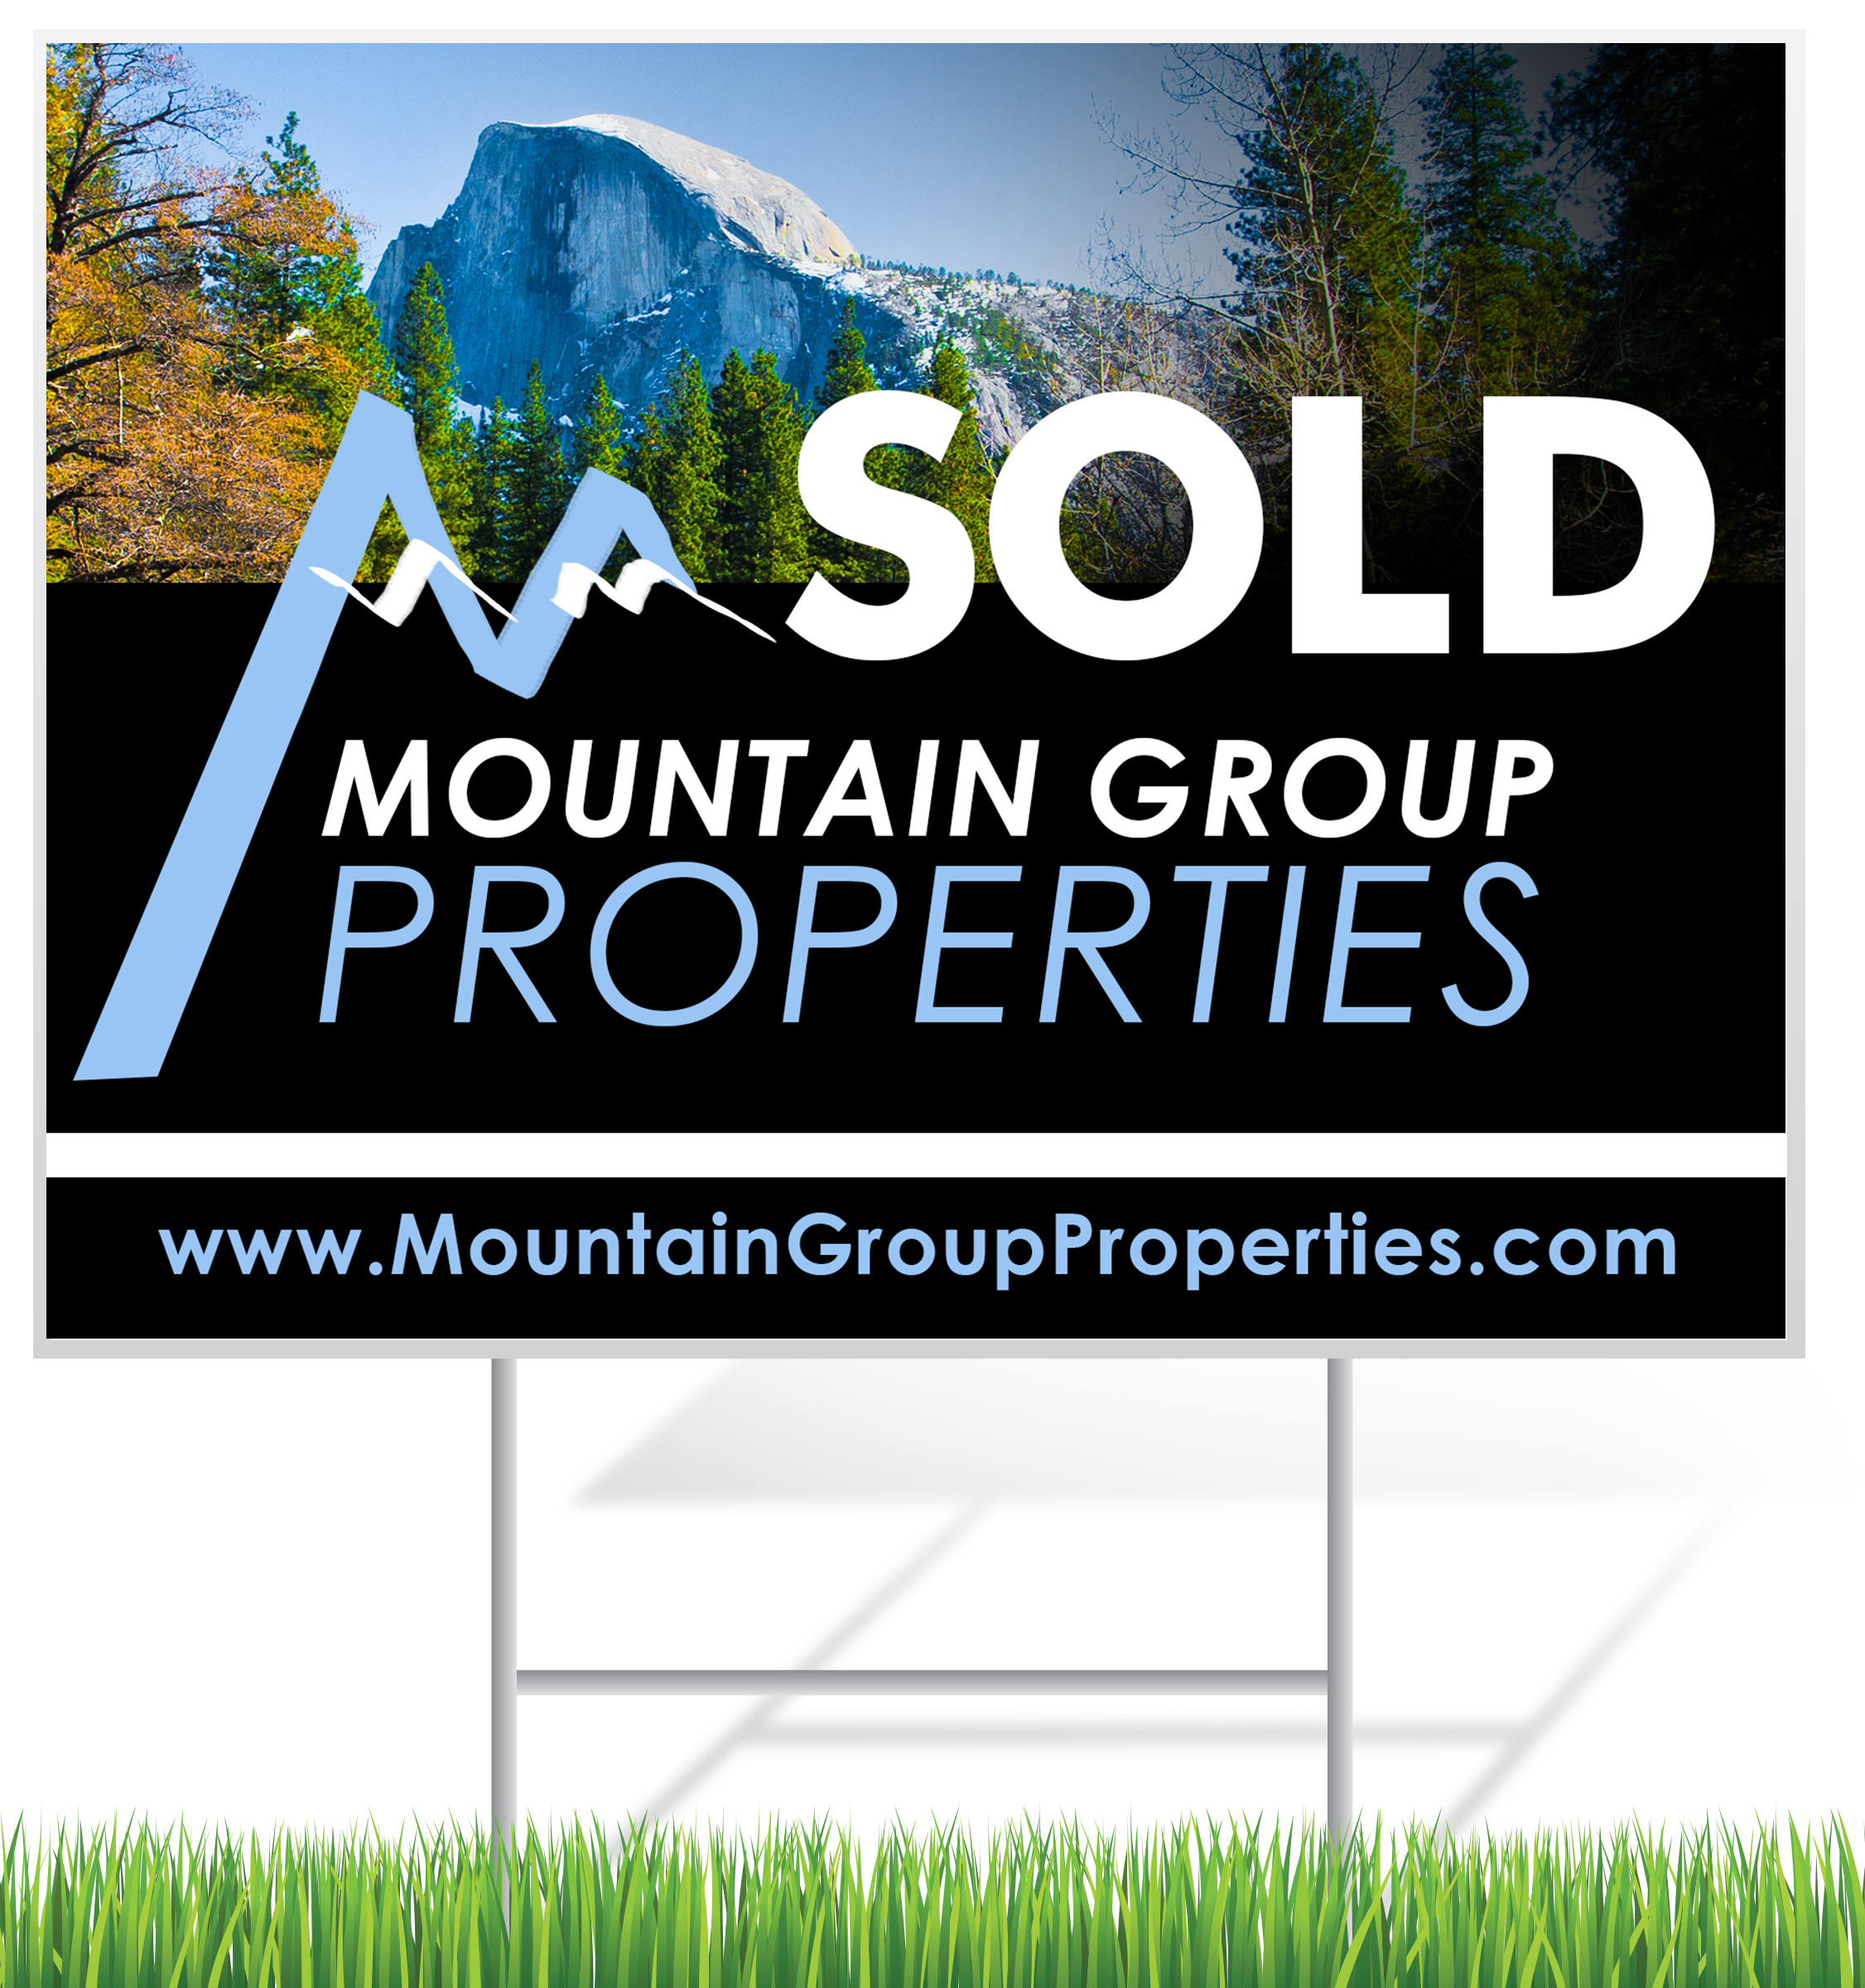 Sold Lawn Sign Example | LawnSigns.com